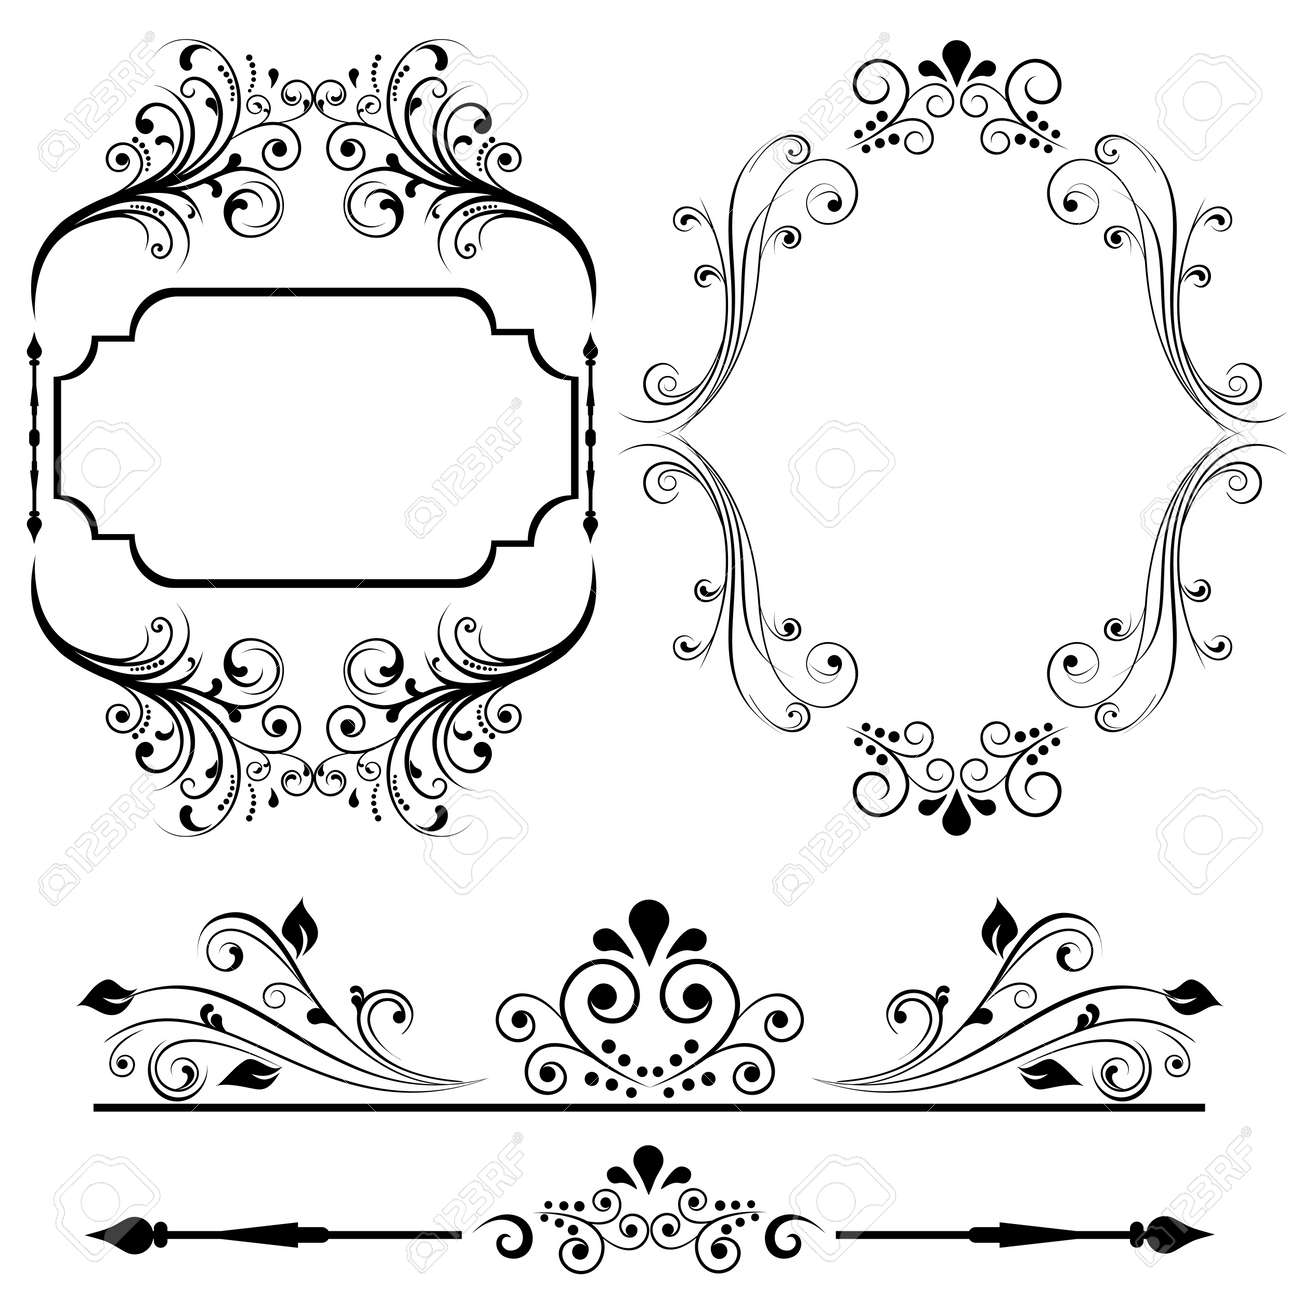 Border and frame designs for cards or invitations royalty free border and frame designs for cards or invitations stock vector 12067290 stopboris Choice Image